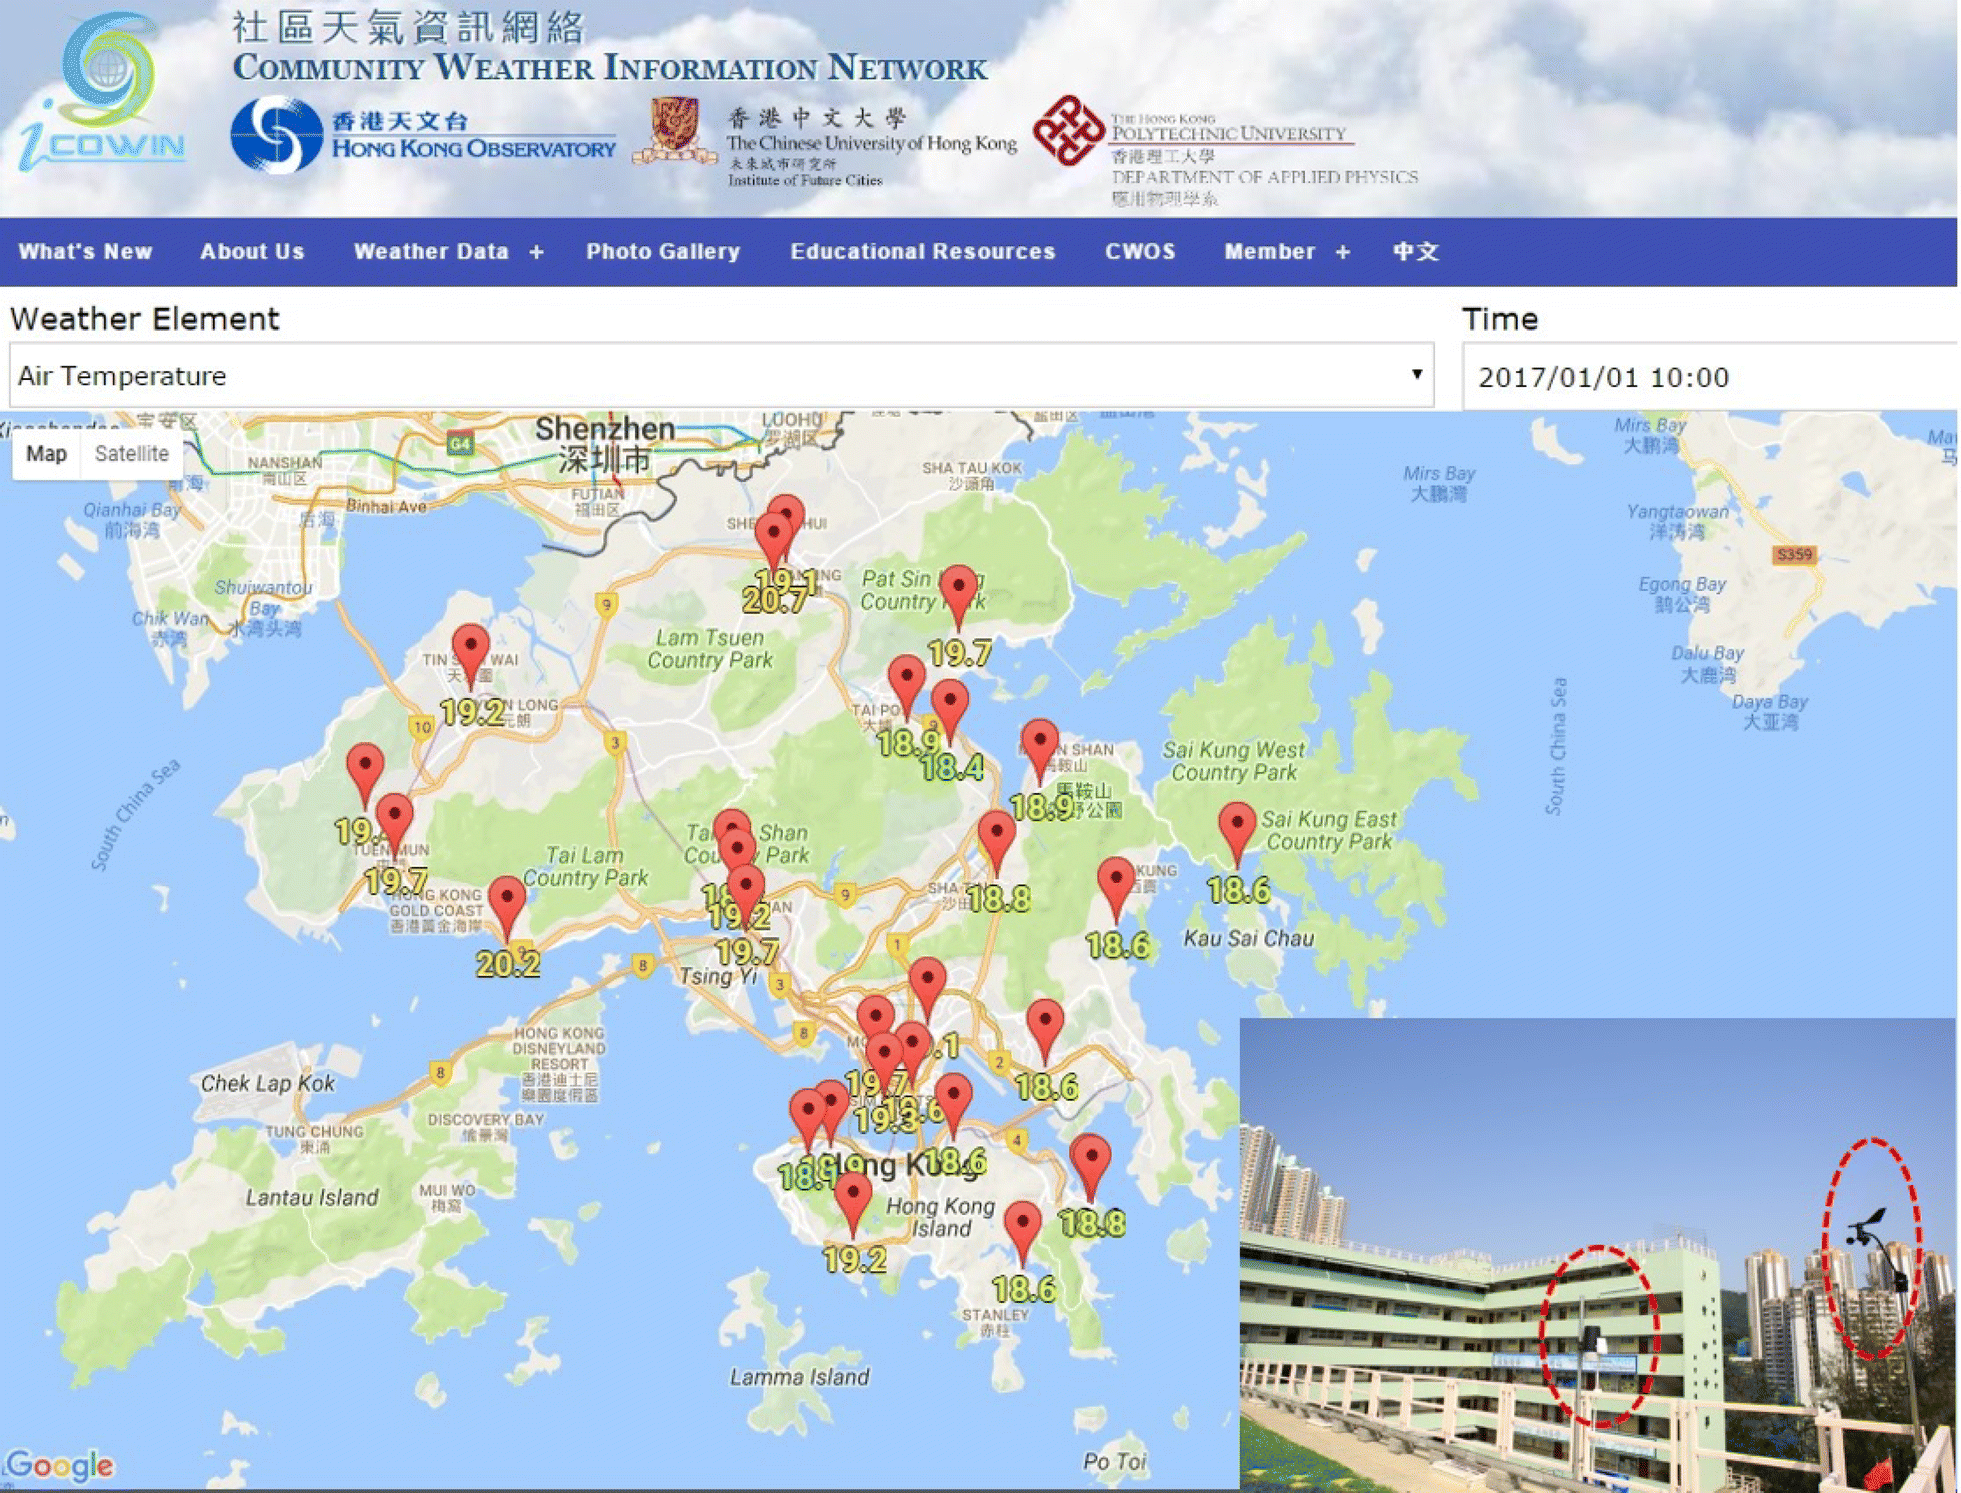 Urban-focused weather and climate services in Hong Kong